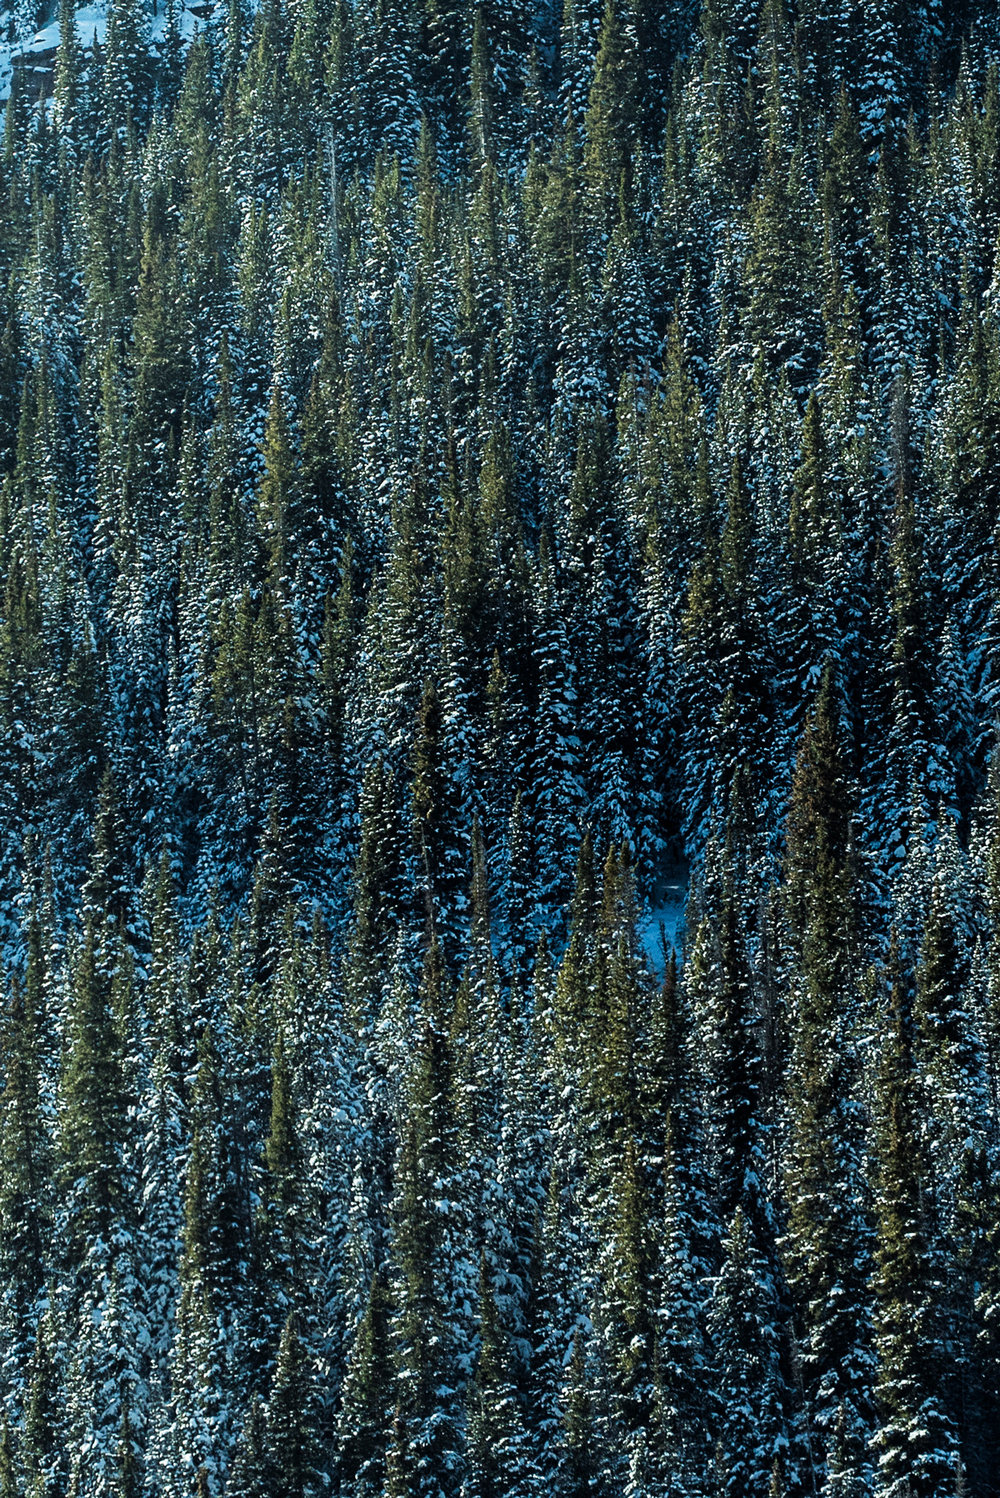 frozen_snow_tree_winter_colorado_alaska_green_branch.jpg